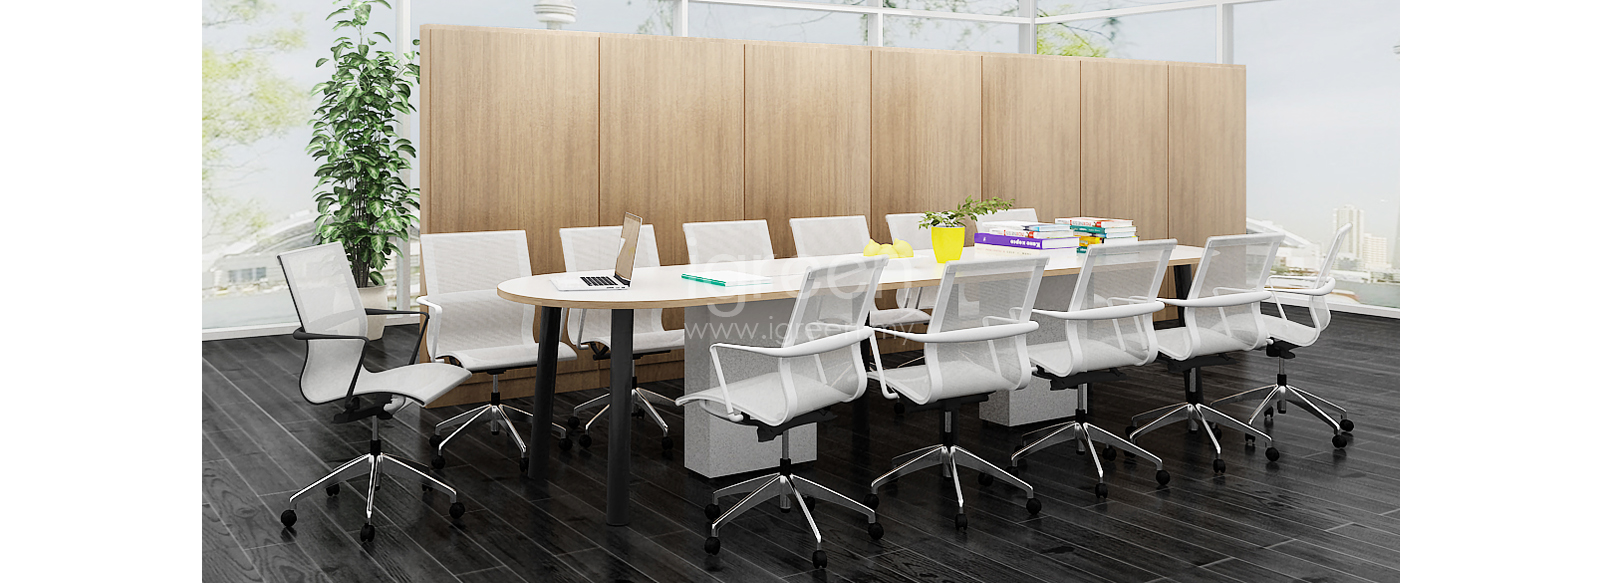 Been Series Design Concept Oval Meeting Table